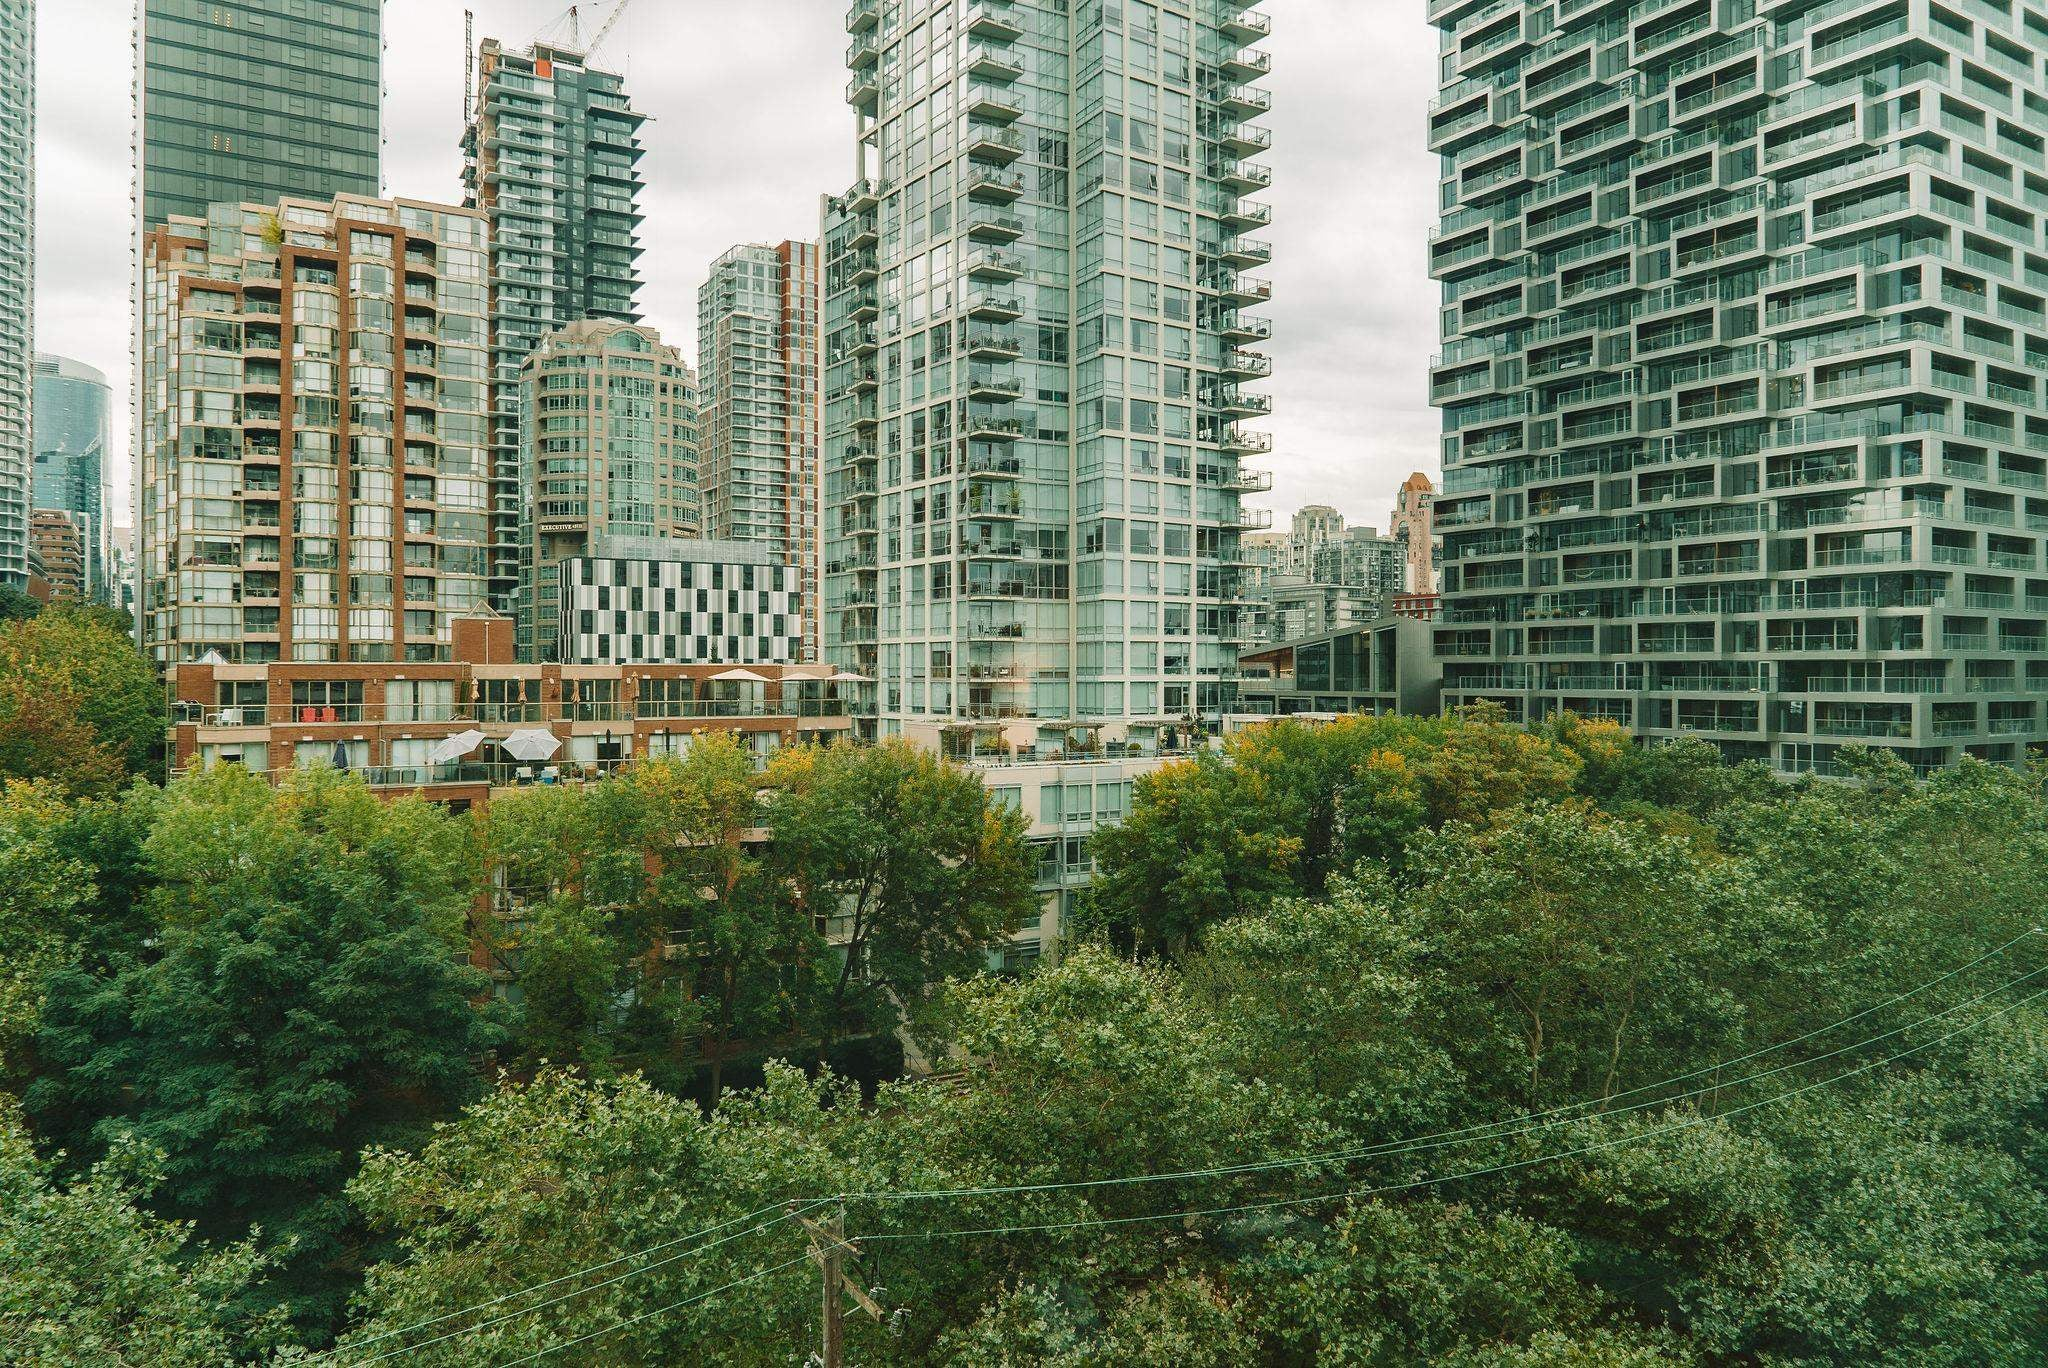 1009 1500 HORNBY STREET - Yaletown Apartment/Condo for sale, 2 Bedrooms (R2617441) - #28